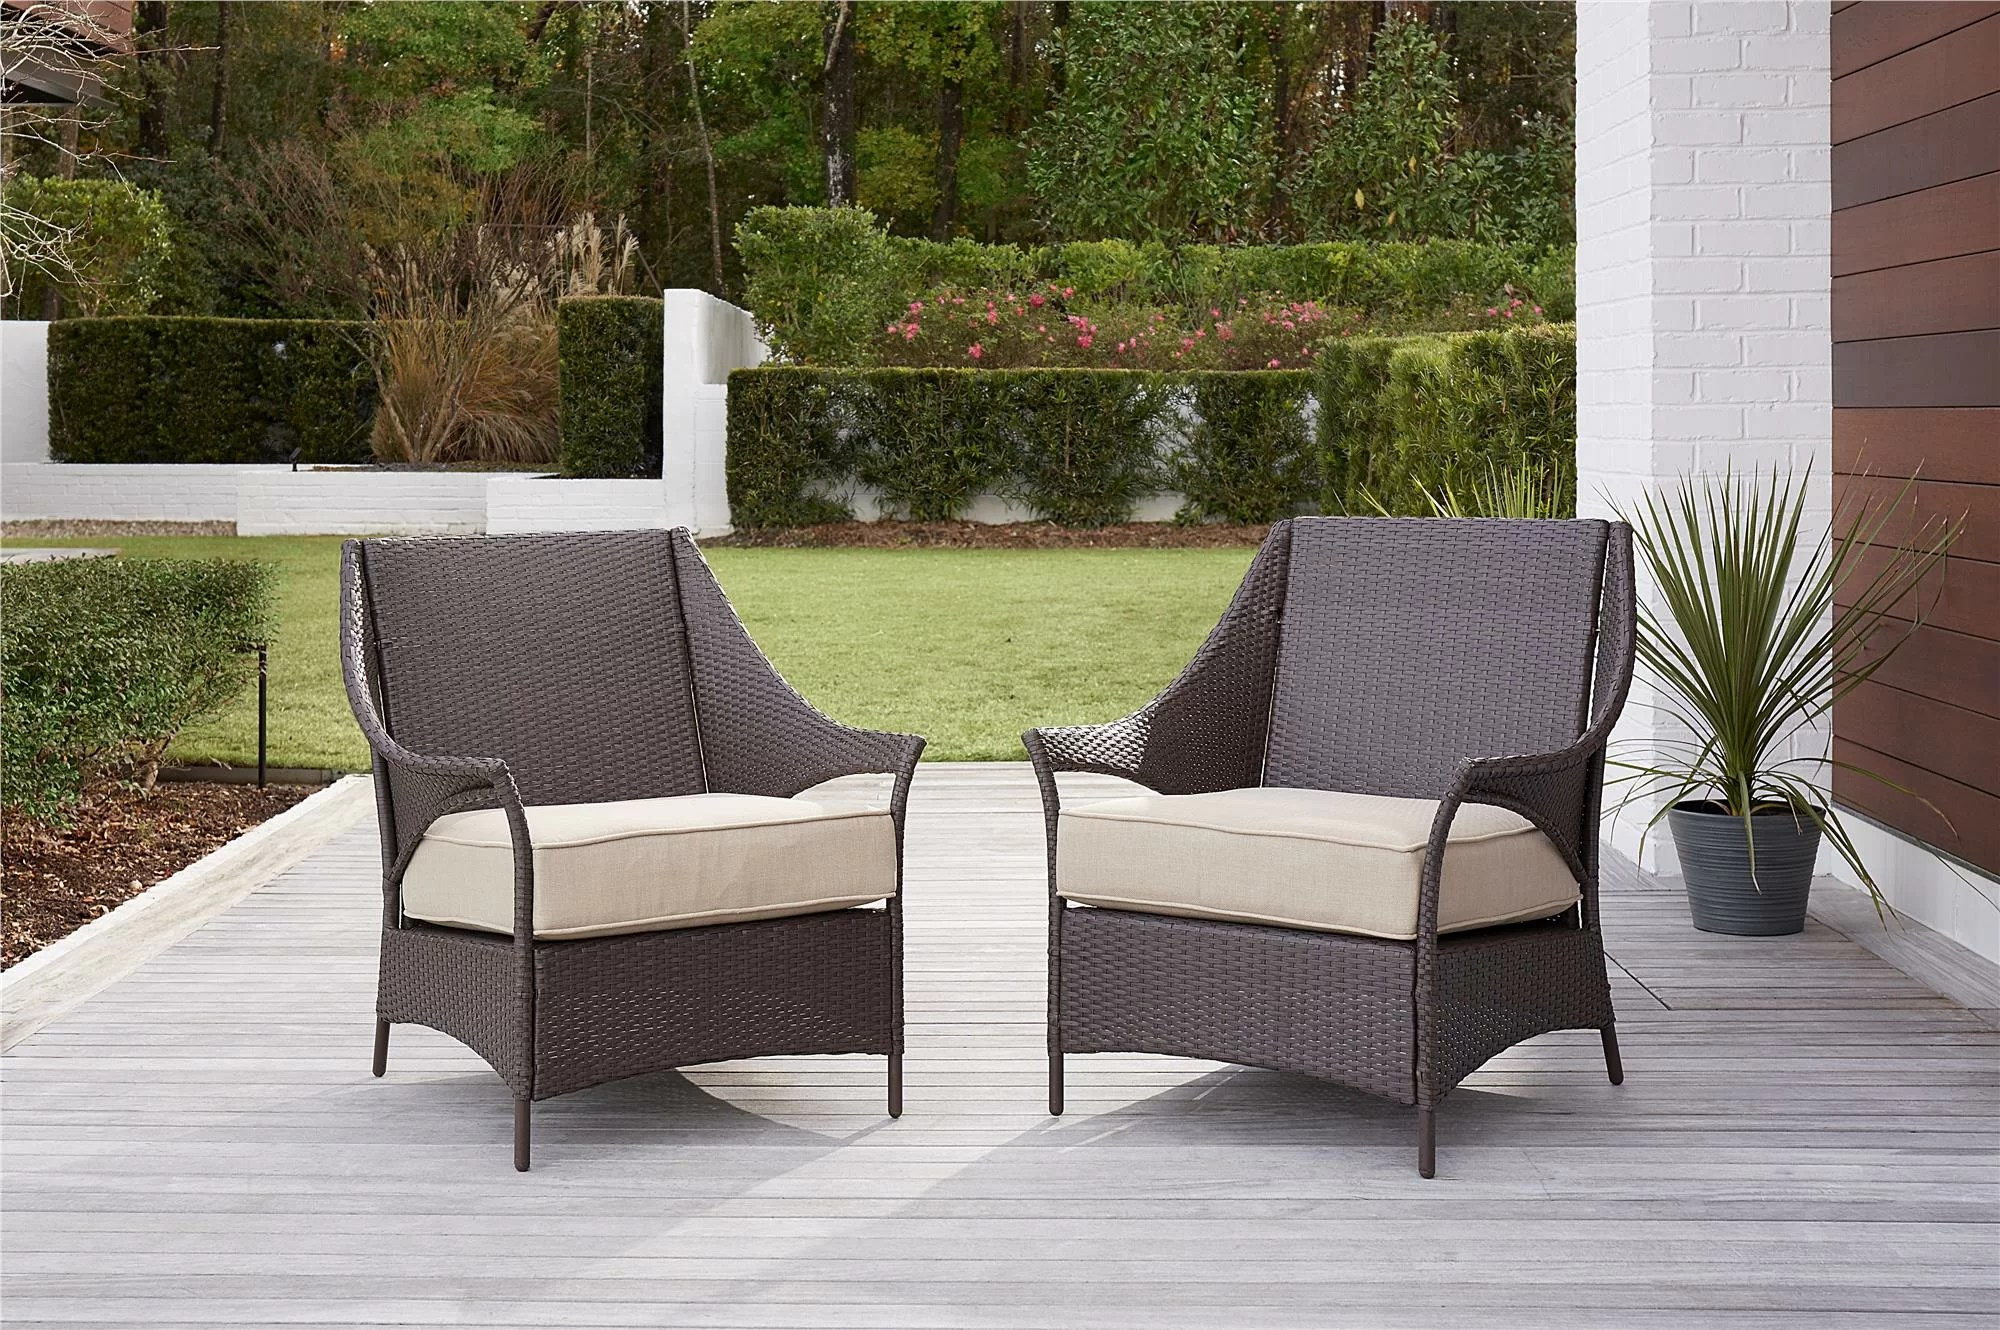 Outdoor Chair Set Ismay Outdoor Chair With Cushions